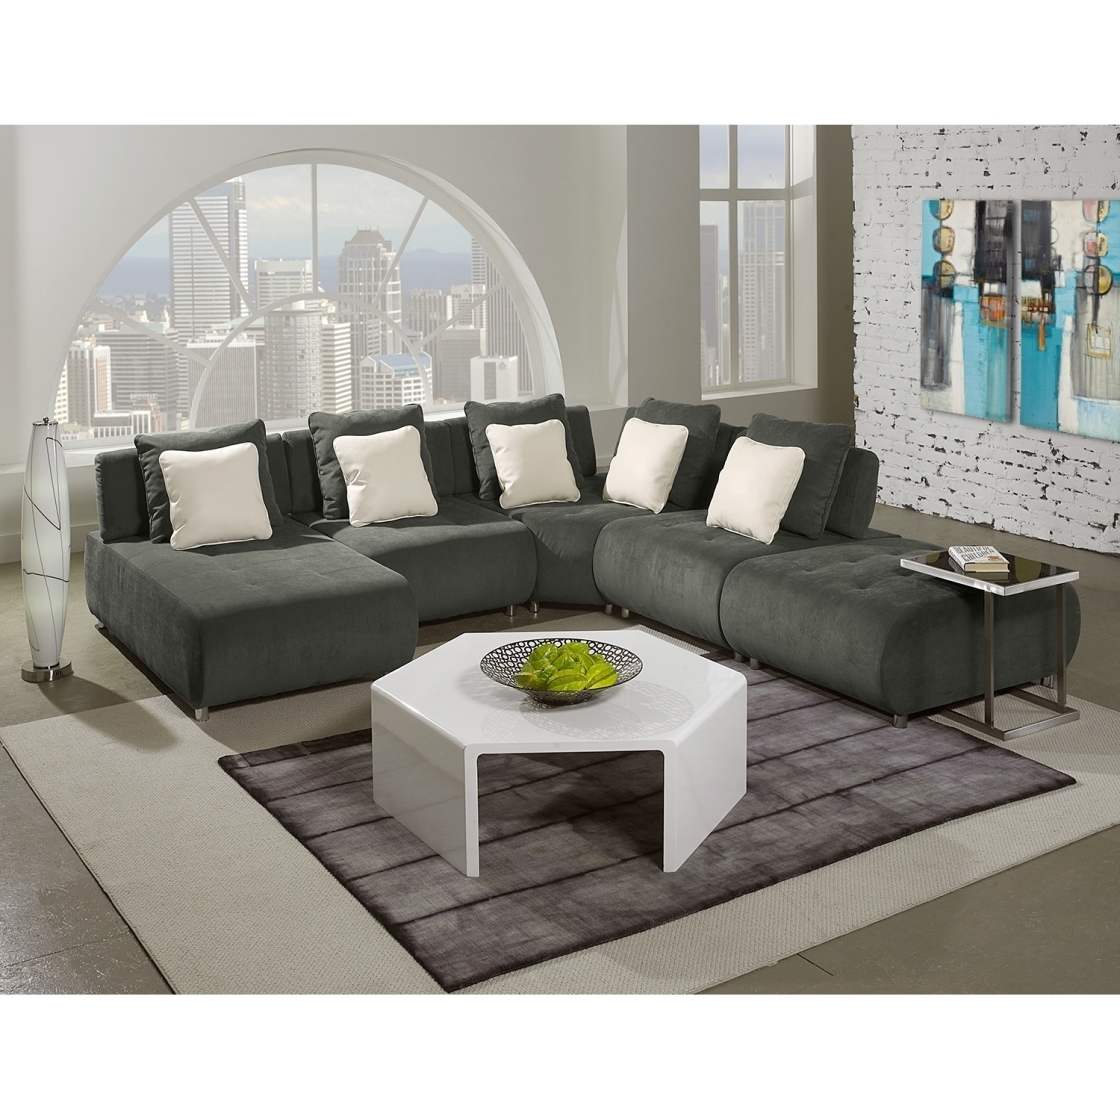 Beautiful Sleek Sectional Sofas 66 In Sectional Sofa For Small Space Throughout Sleek Sectional Sofas (View 3 of 10)